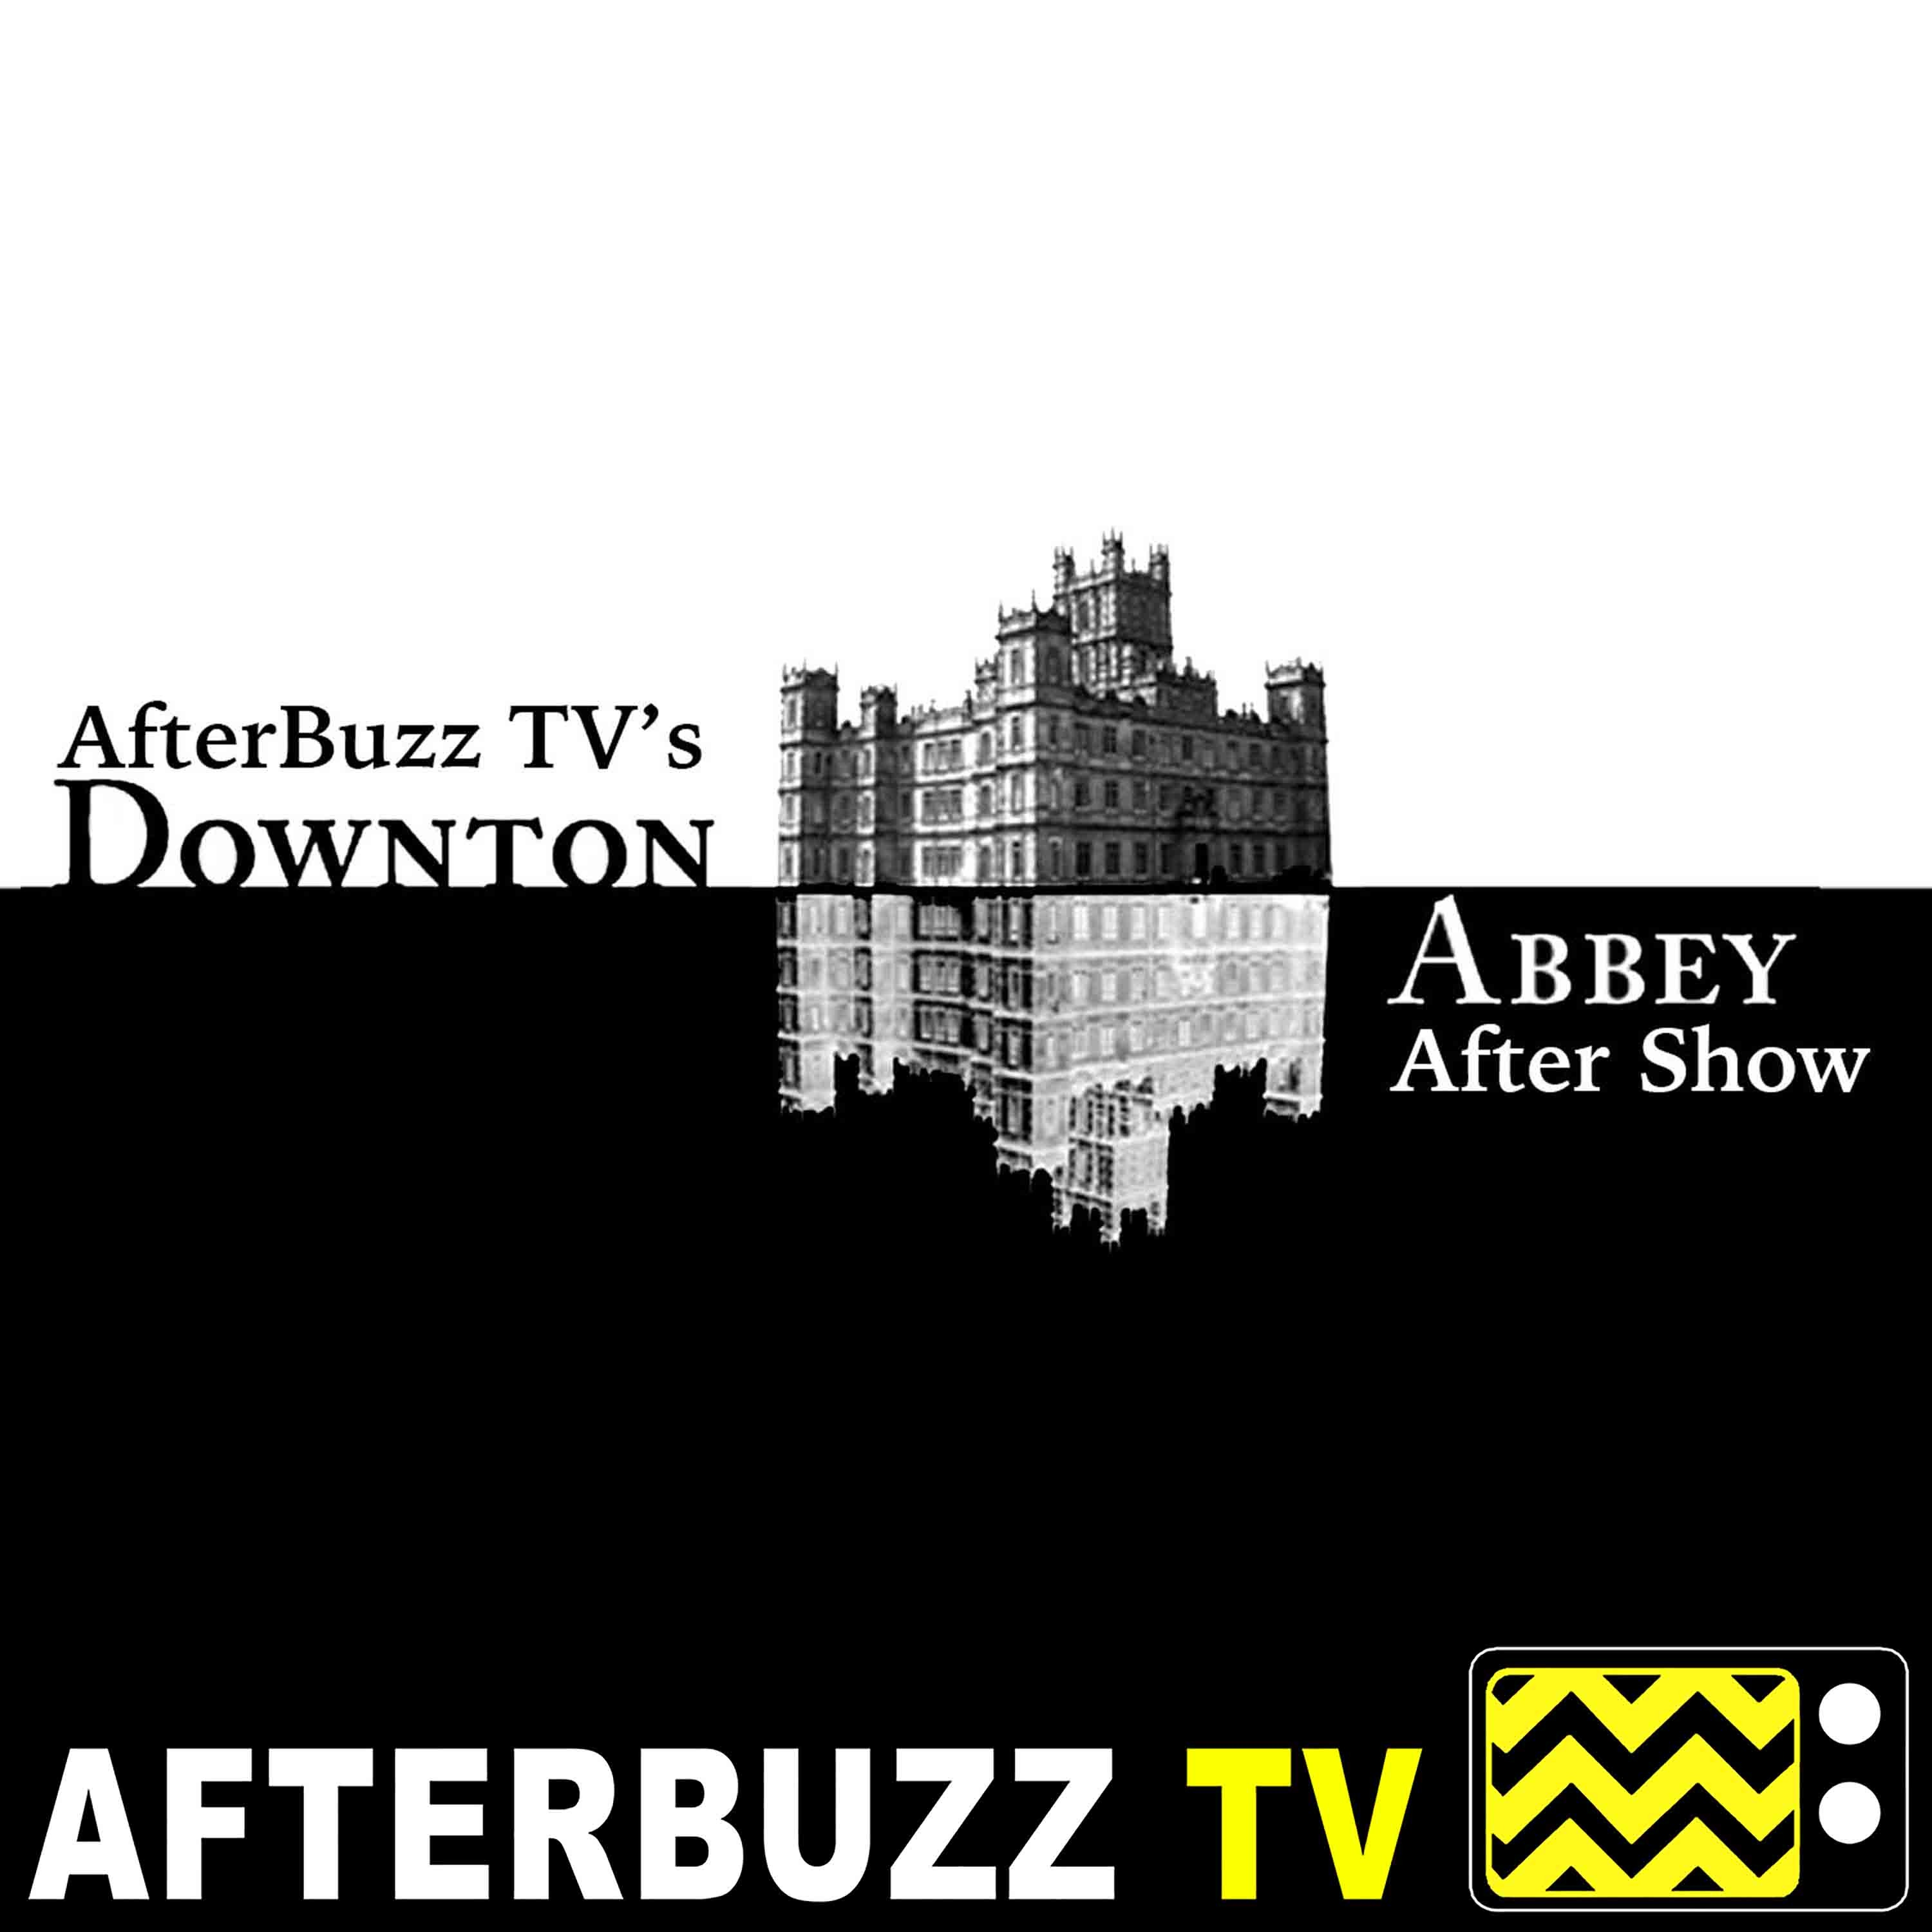 Downton Abbey UK S:6 | The Finale E: 9 | AfterBuzz TV AfterShow